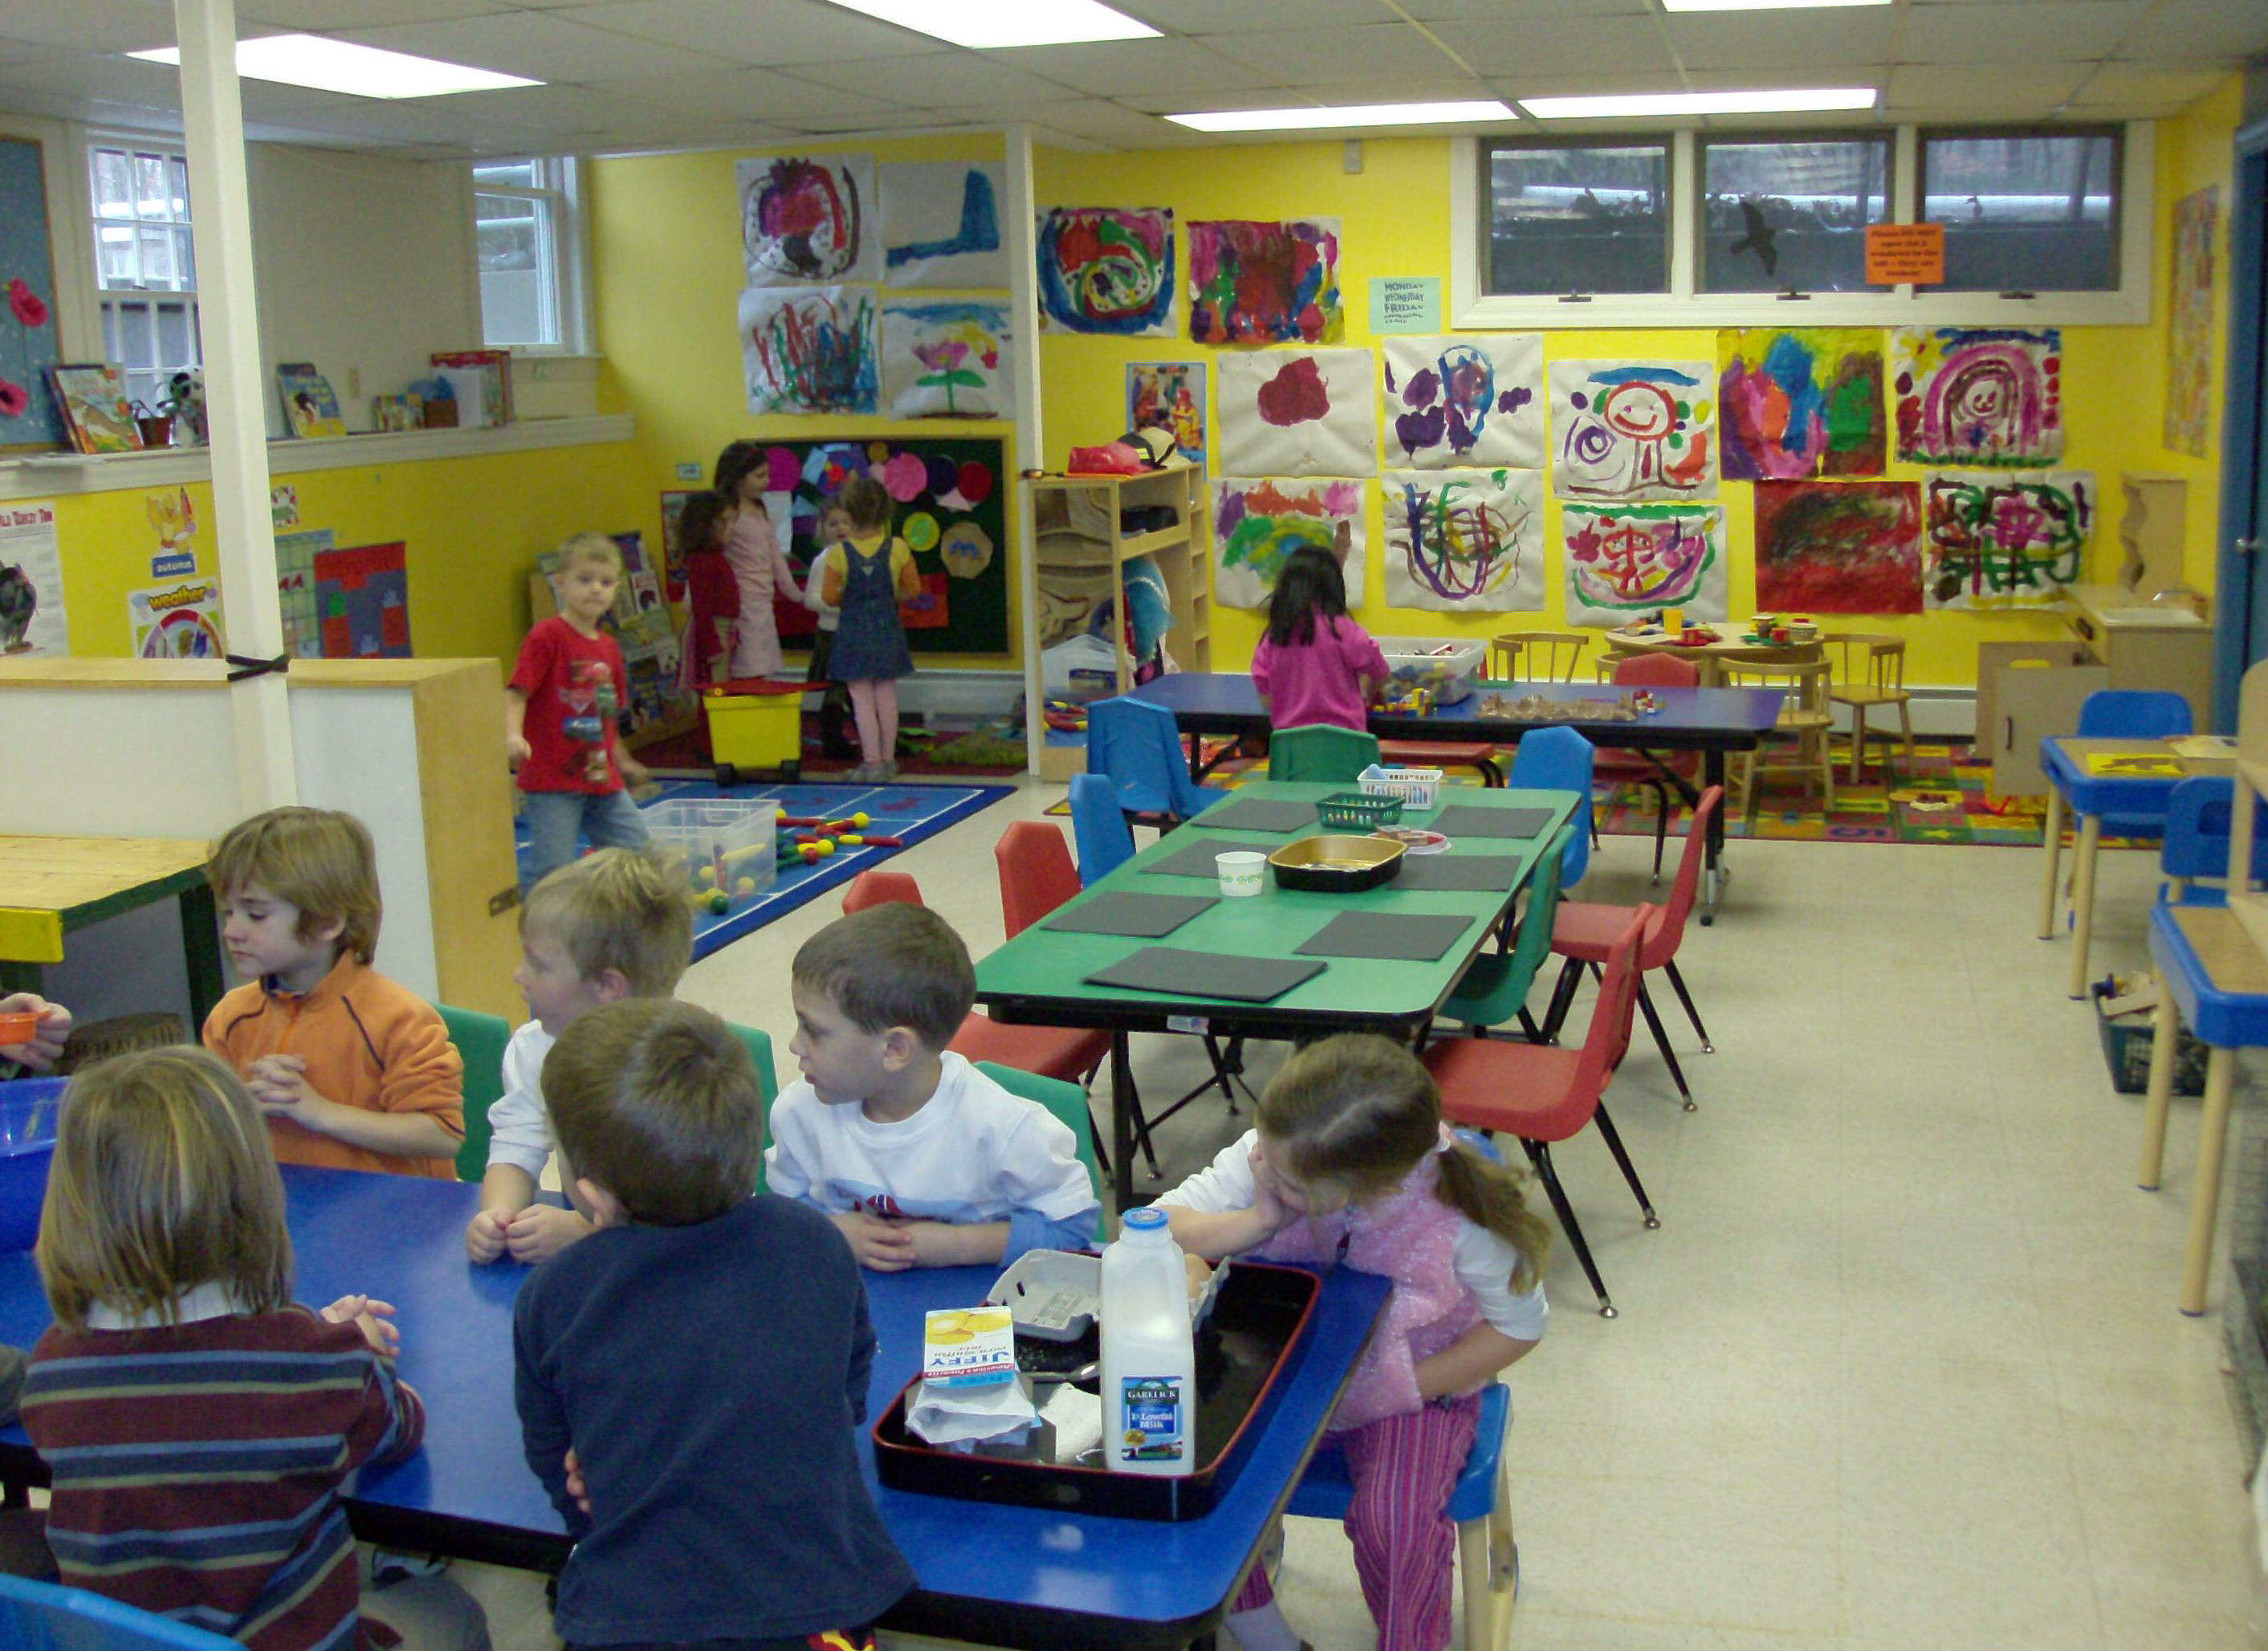 Group Family Daycare Design Ideas Car Pictures Car Canyon - Home daycare design ideas